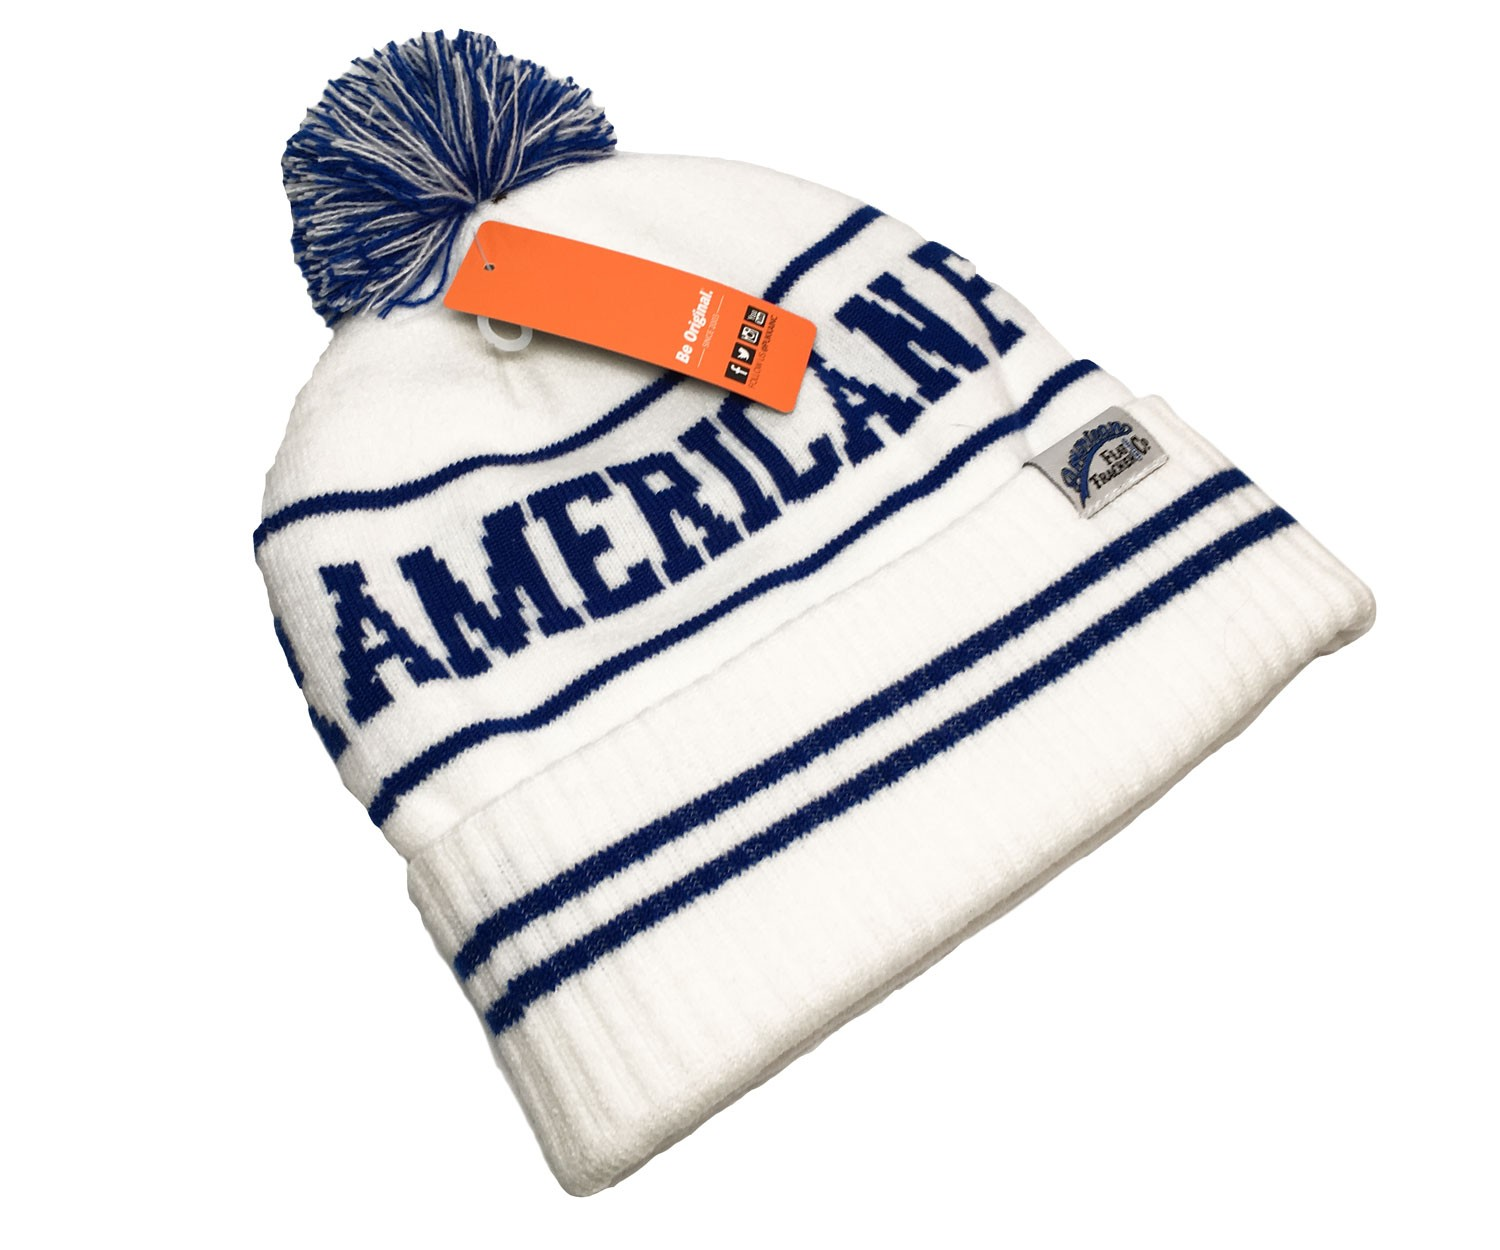 AMERICAN FLAT TRACKER KNIT CAP - WHITE/BLUE !! SALE !! 67% OFF